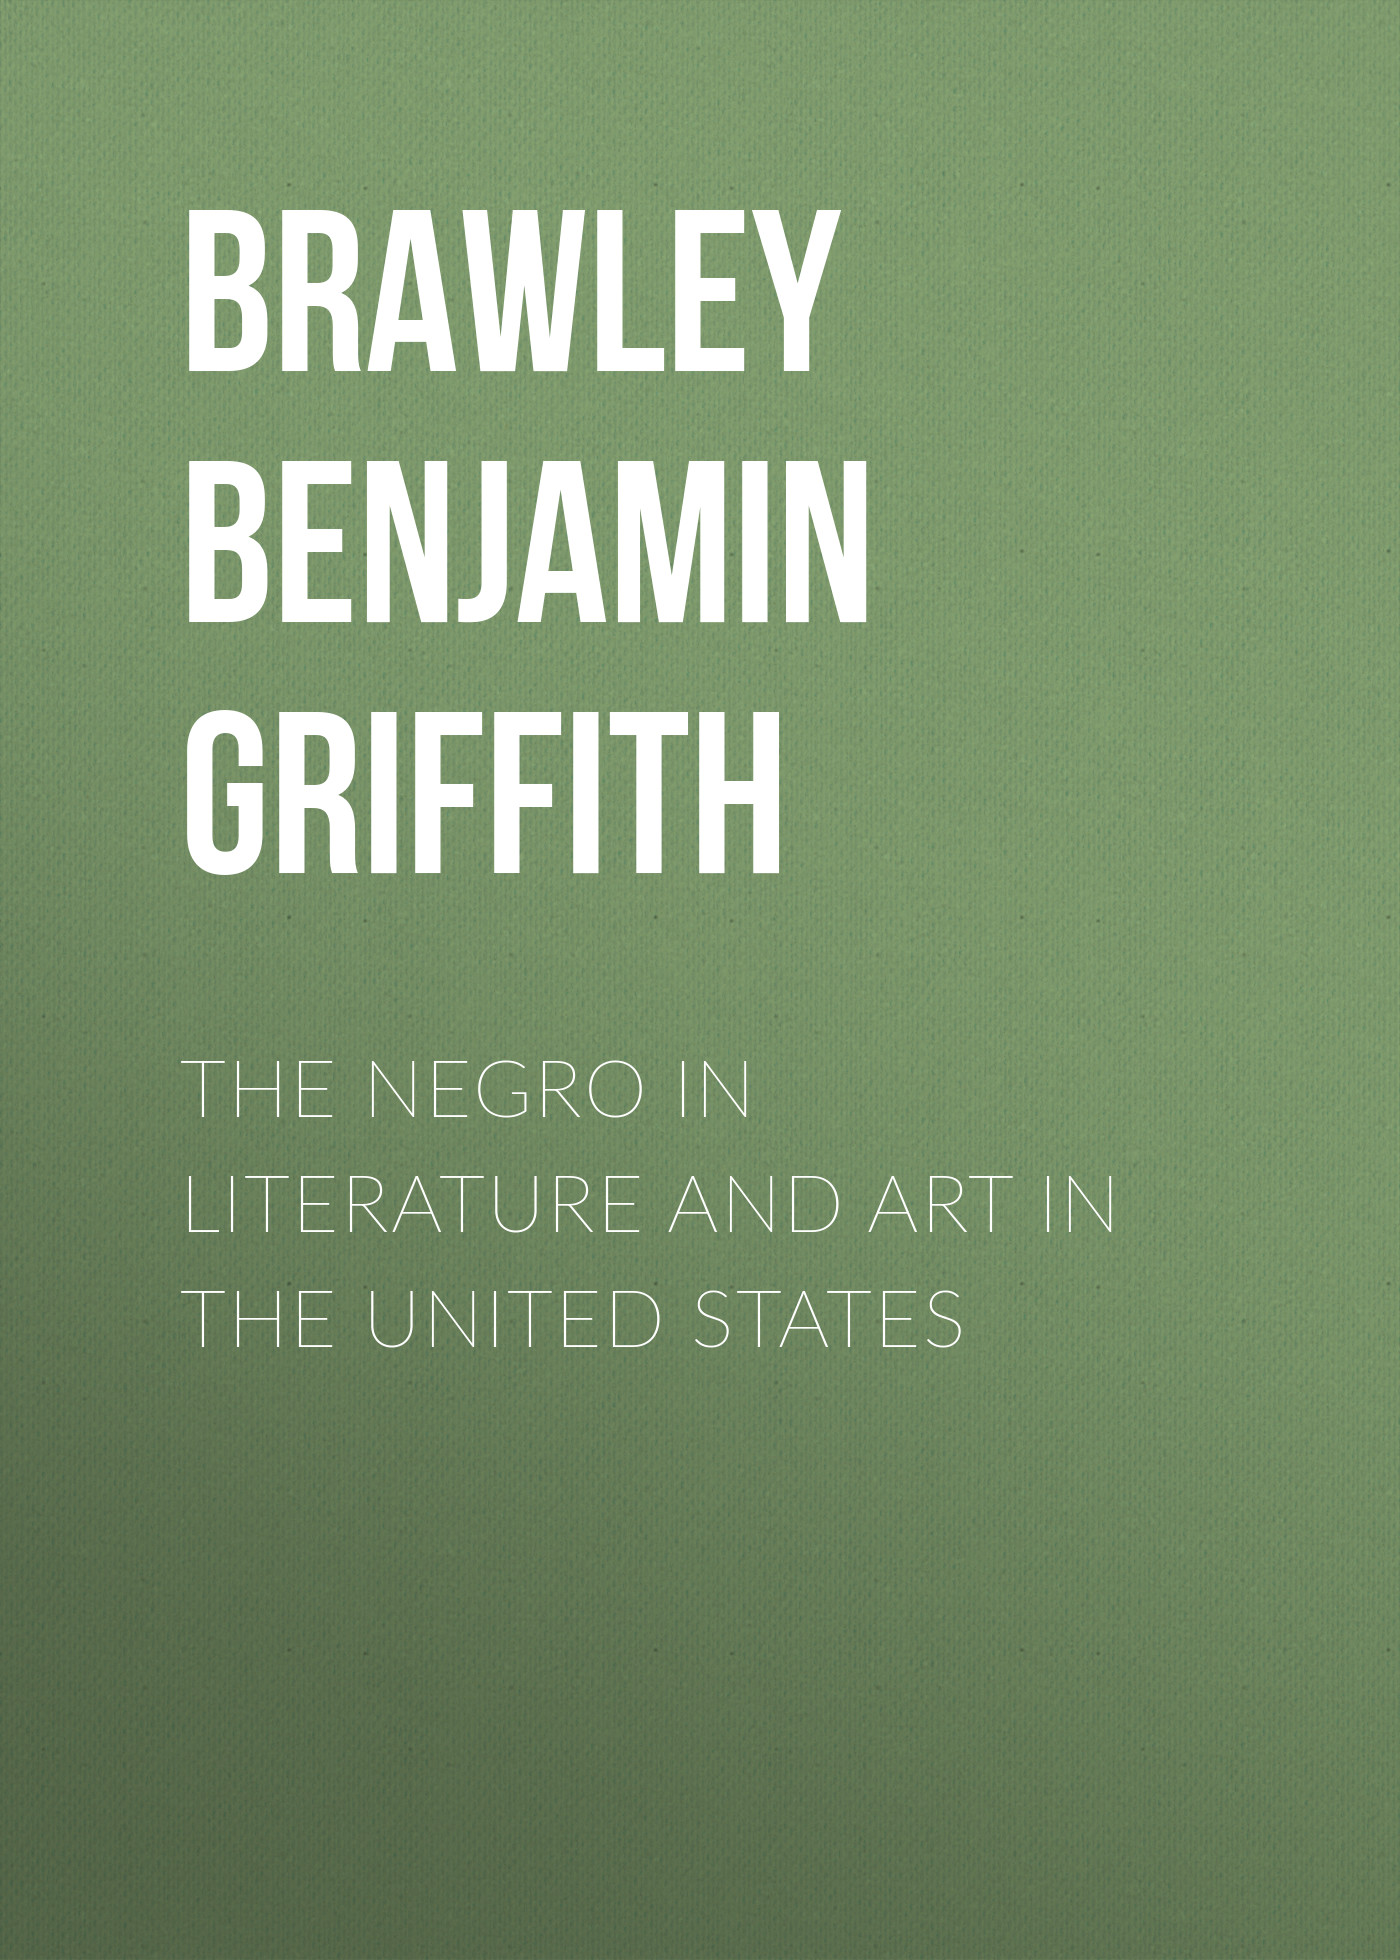 Brawley Benjamin Griffith The Negro in Literature and Art in the United States шкаф для ванной the united states housing